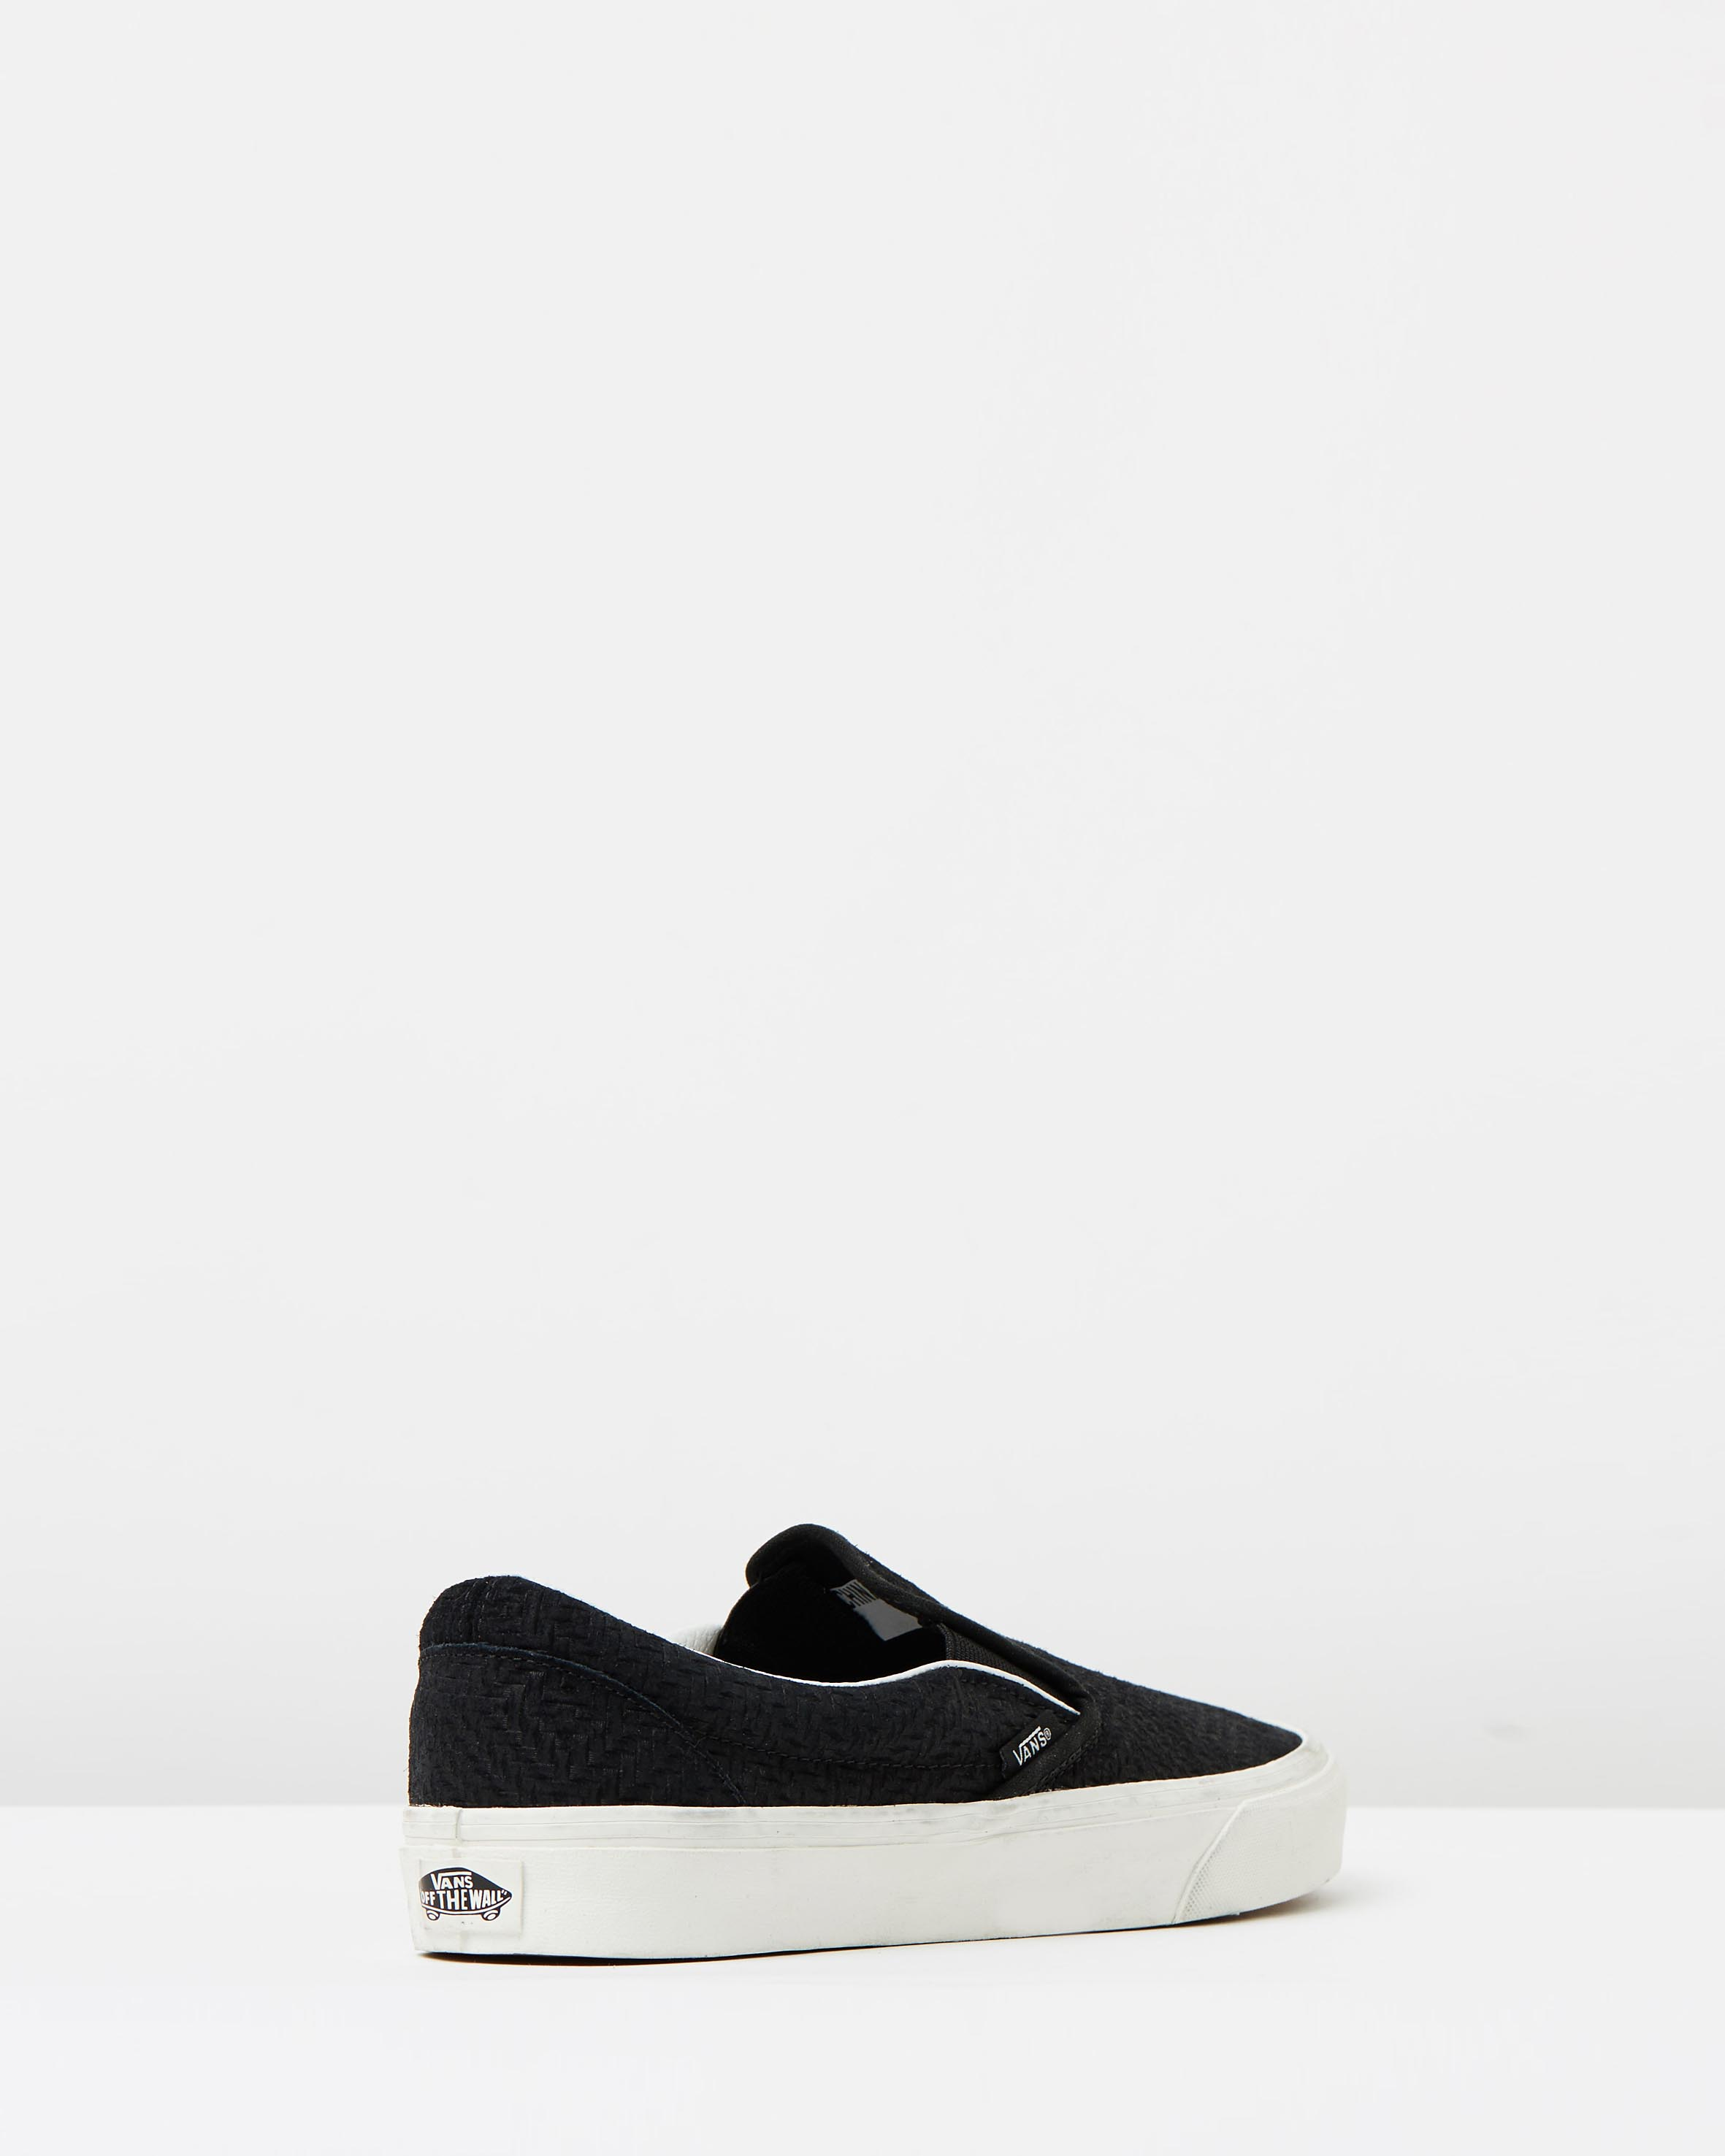 cd90cc70a6 ... Vans Womens Classic Slip On Black Suede Trainers 2 ...